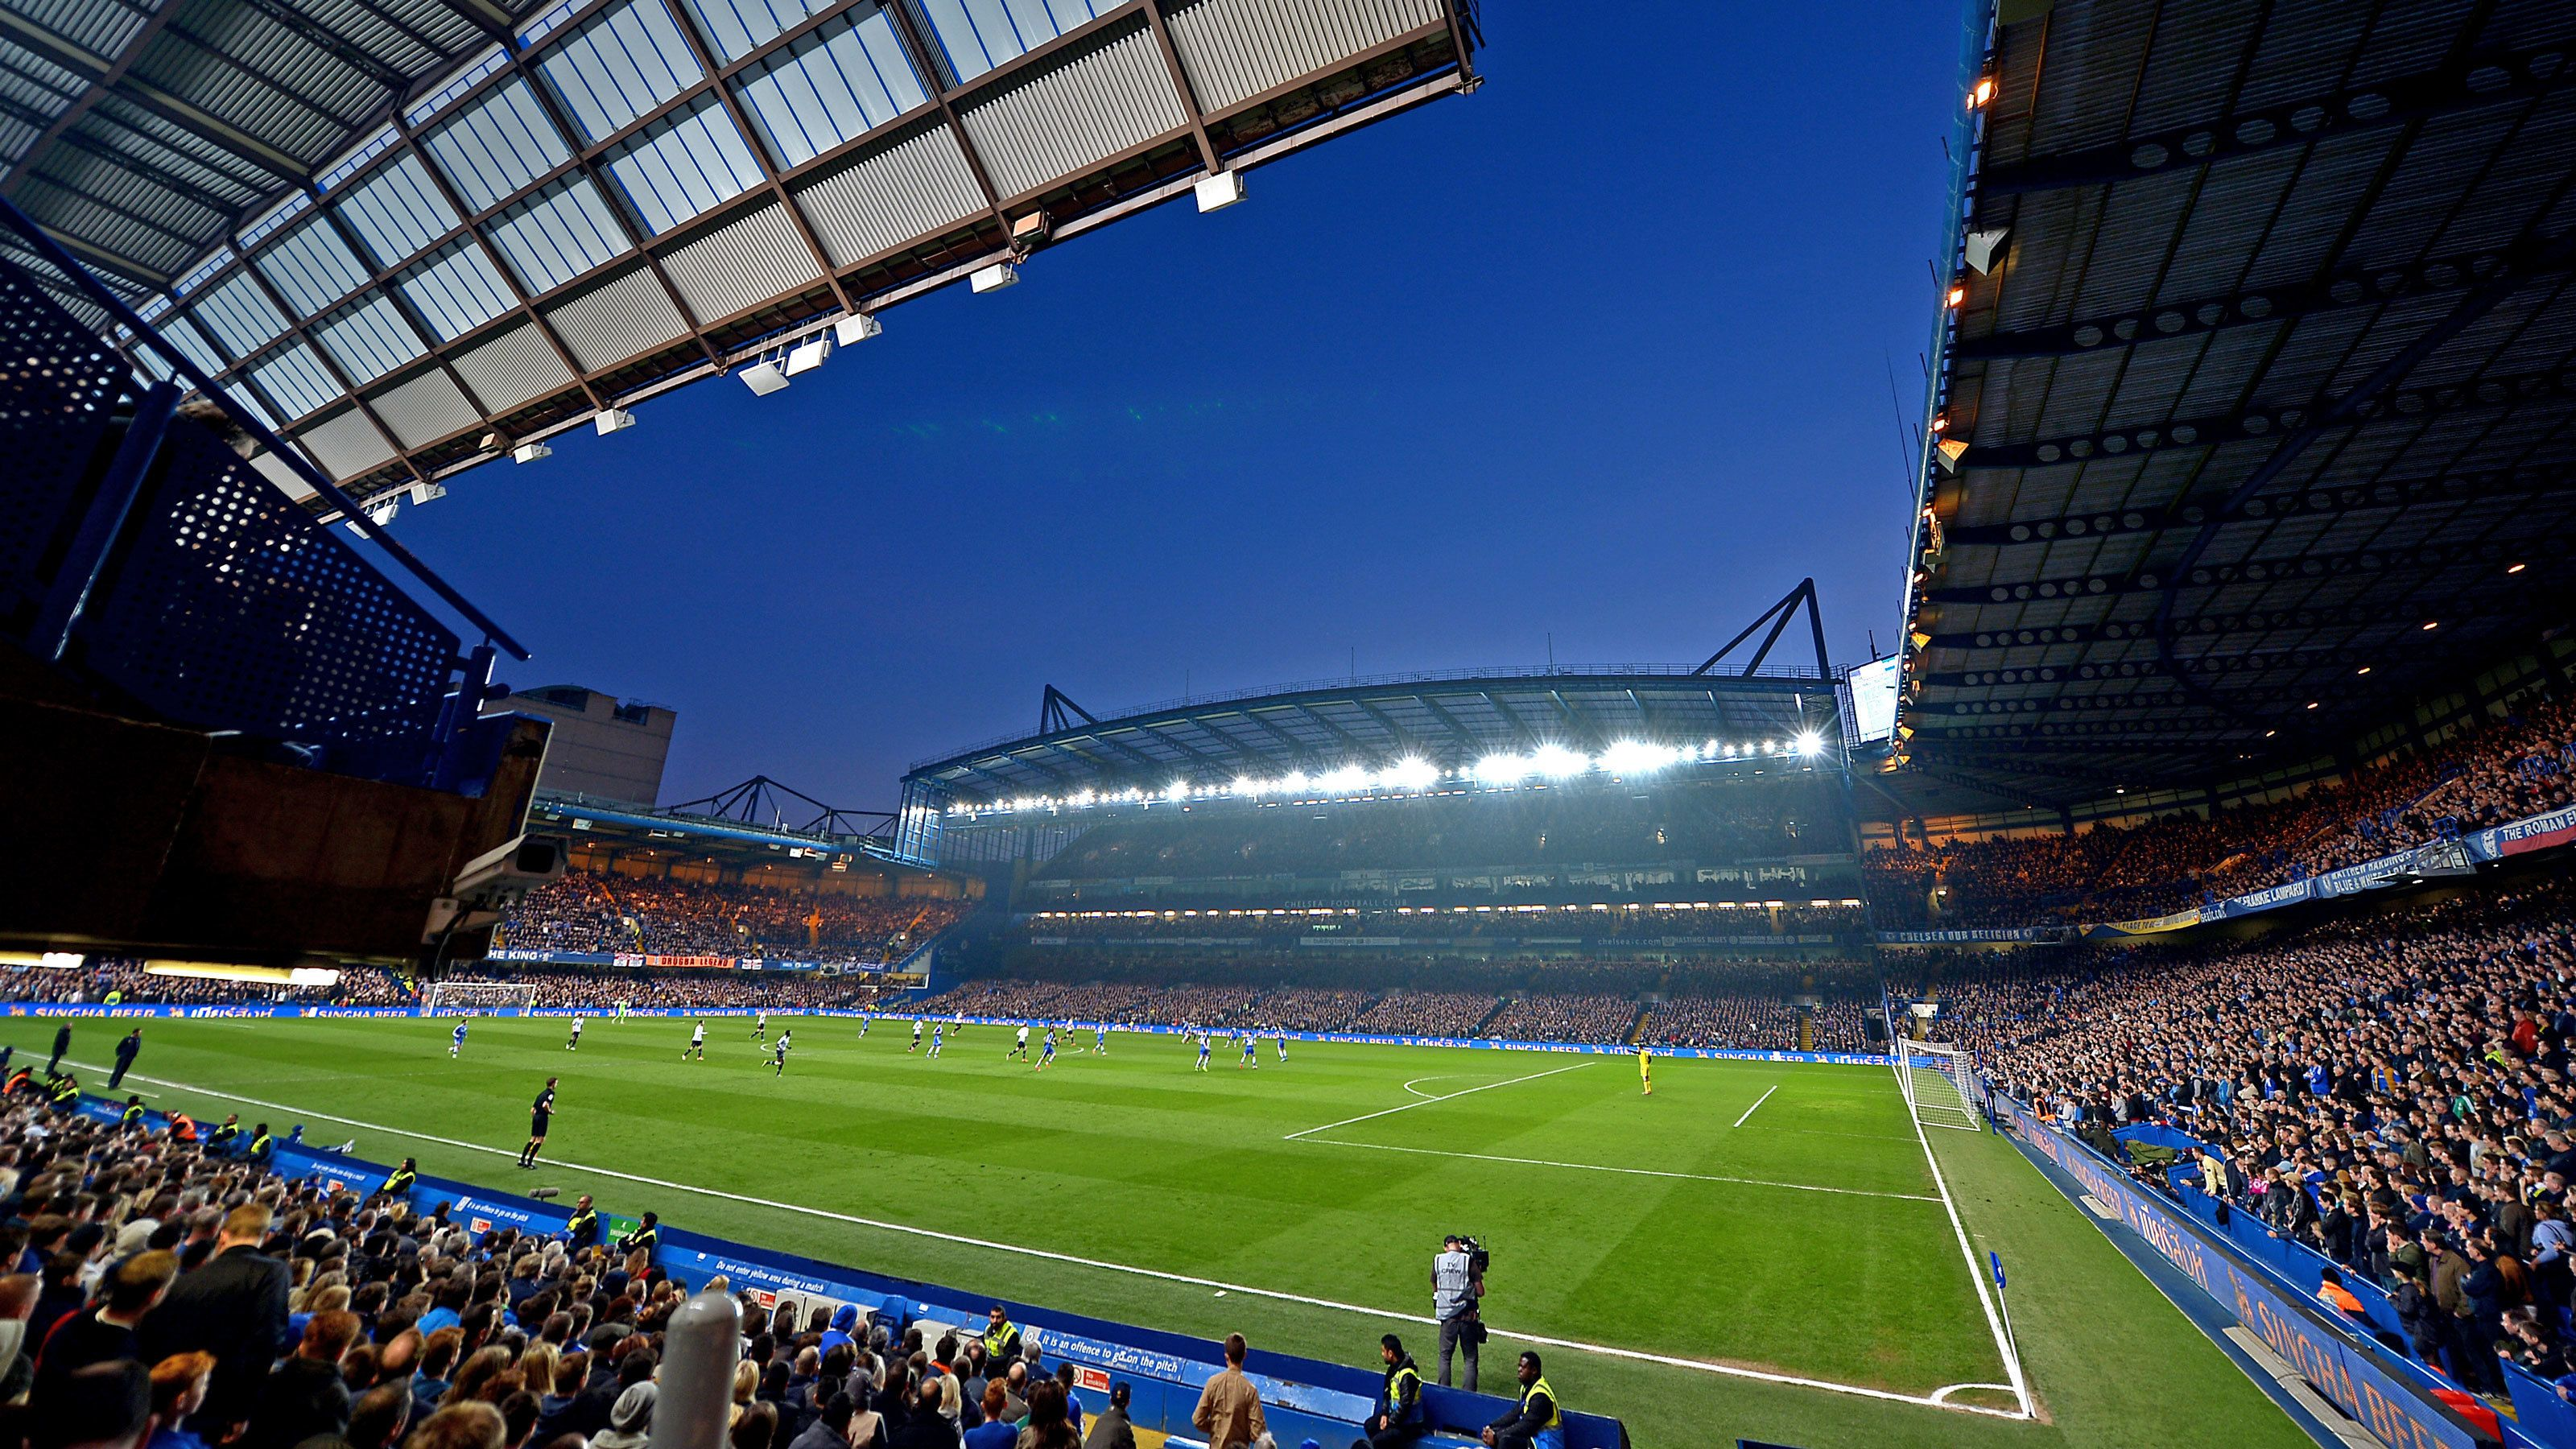 Night view of Chelsea Football Match at Stamford Bridge Stadium in London